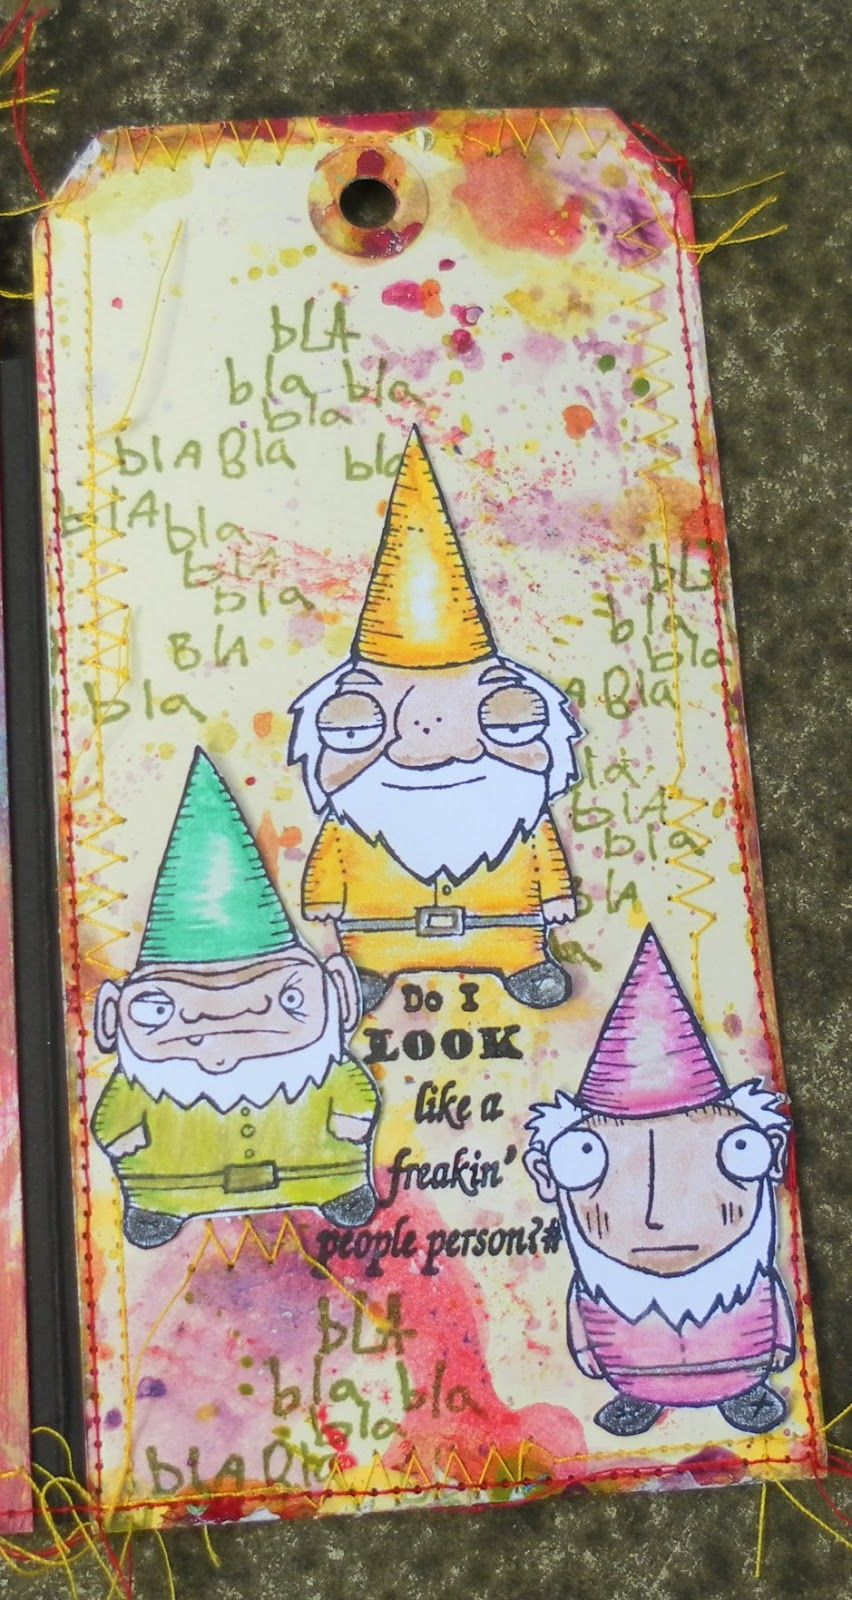 All sewn up with images scrapbook tag scrapbook blog